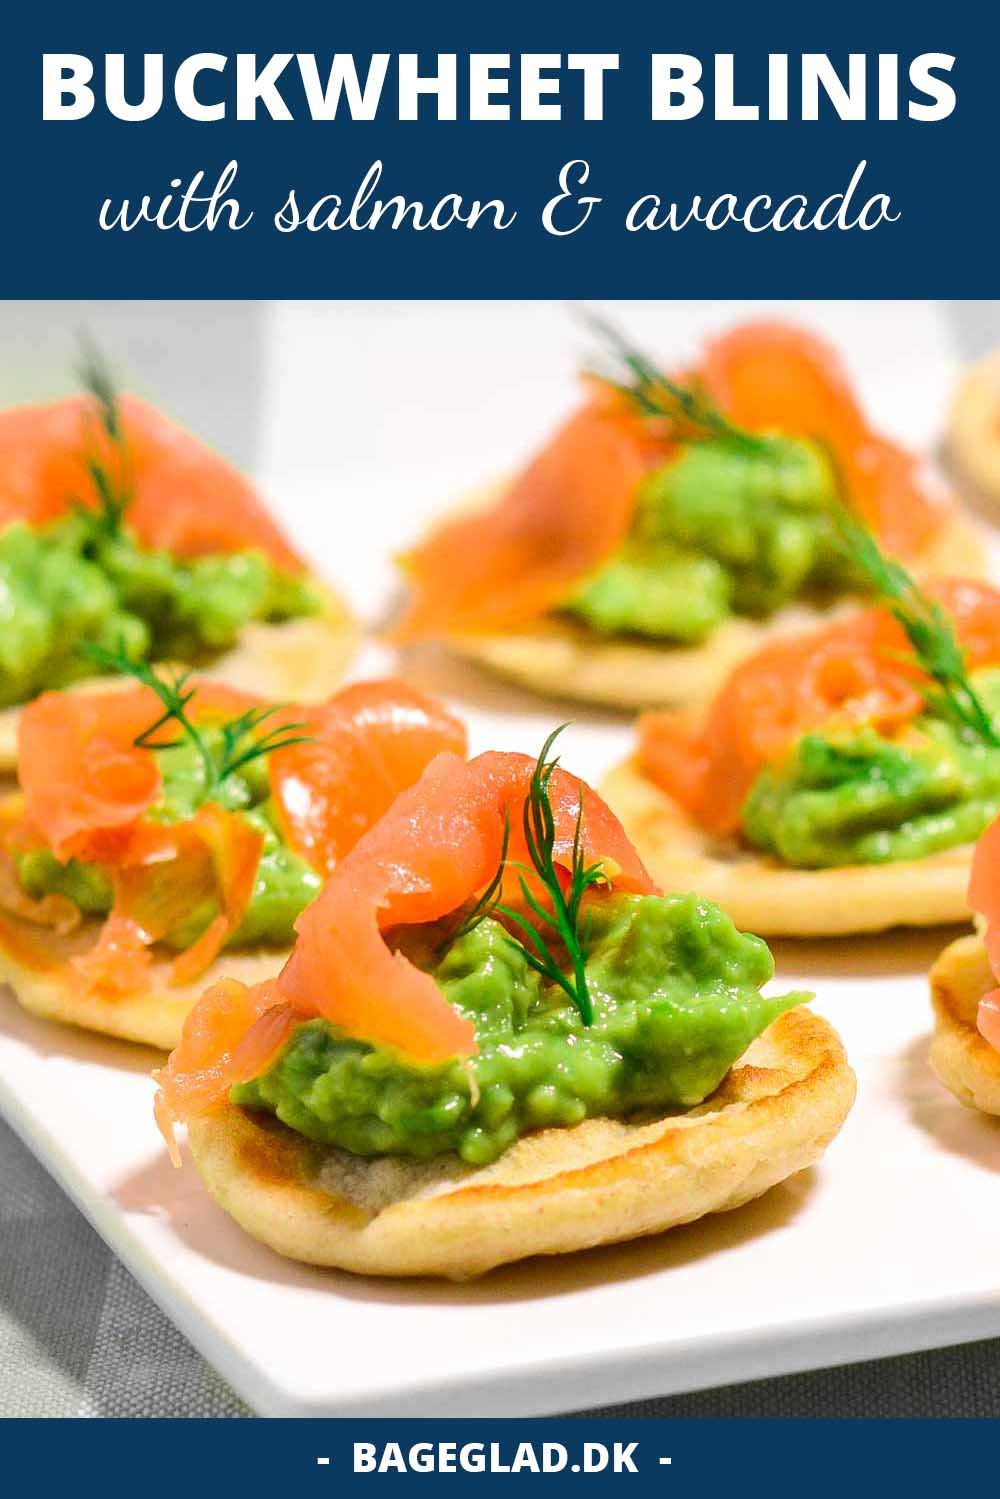 From scratch blinis with avocado and salmon